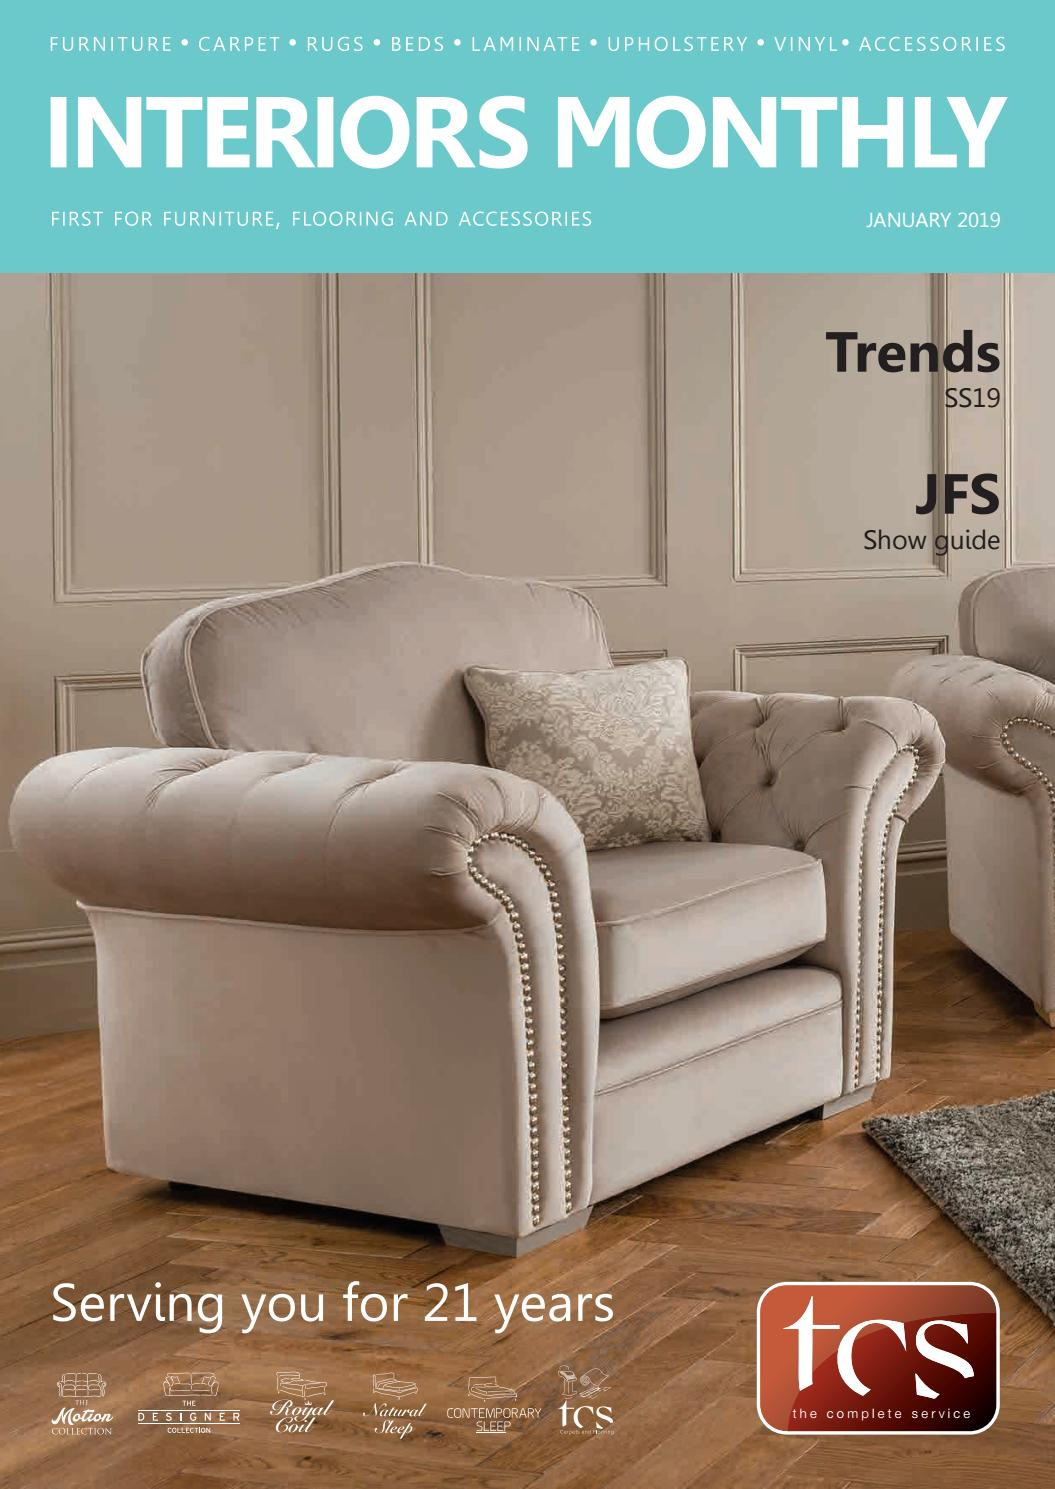 Elite Möbel Sofas Interiors Monthly January 2019 By Interiors Monthly Issuu